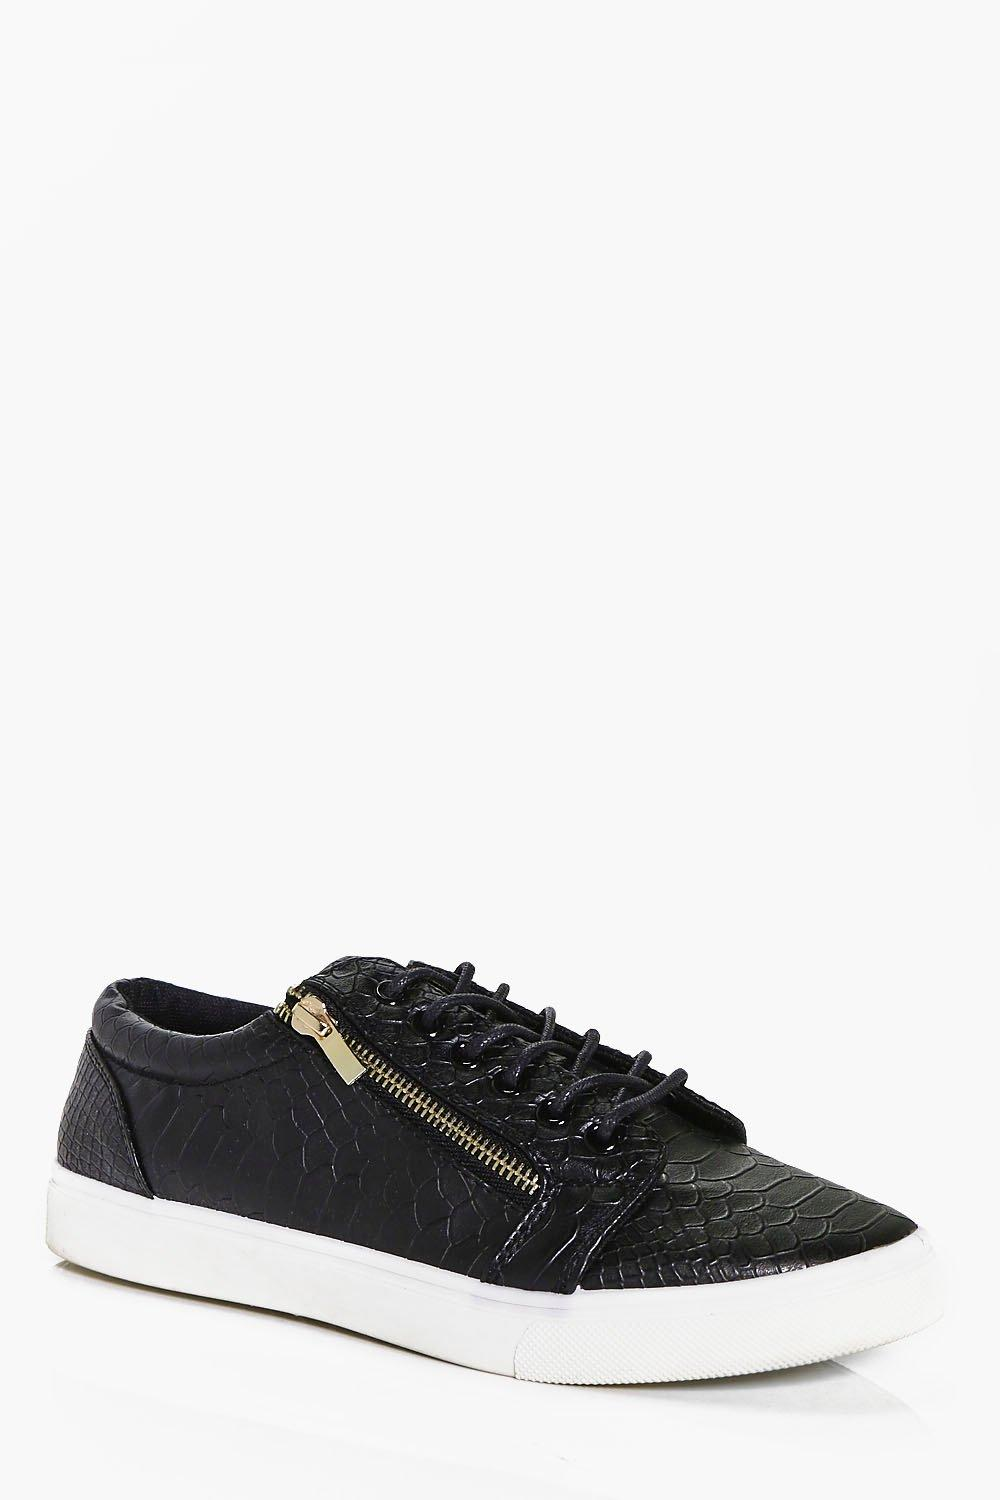 Croc PU Lace Up Trainer